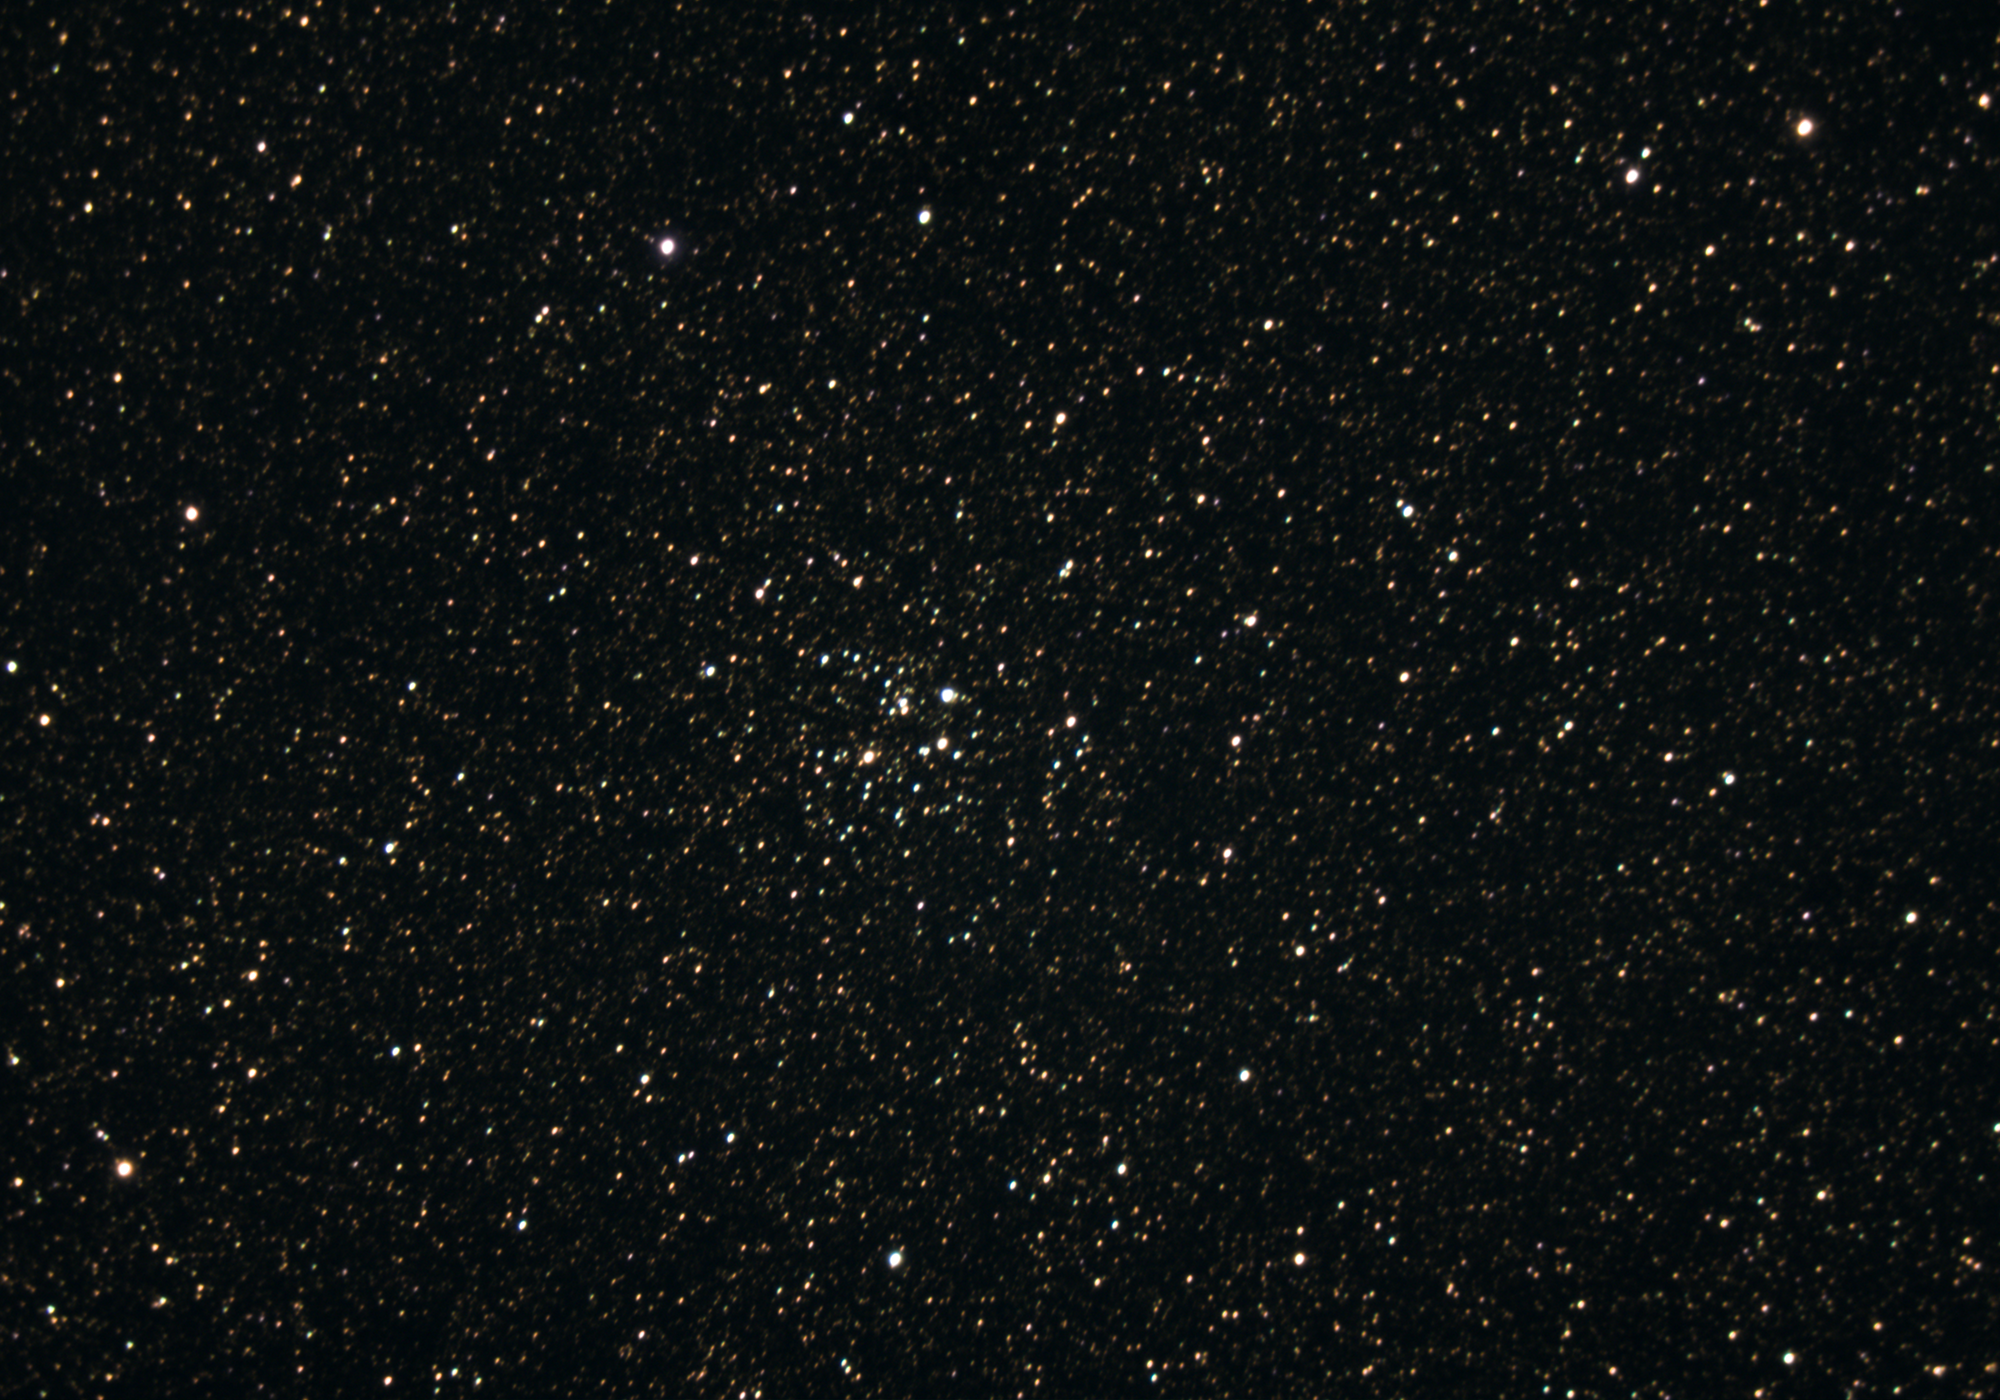 Open Cluster Messier 26, taken by amateur astrophotographer in early August 2020.